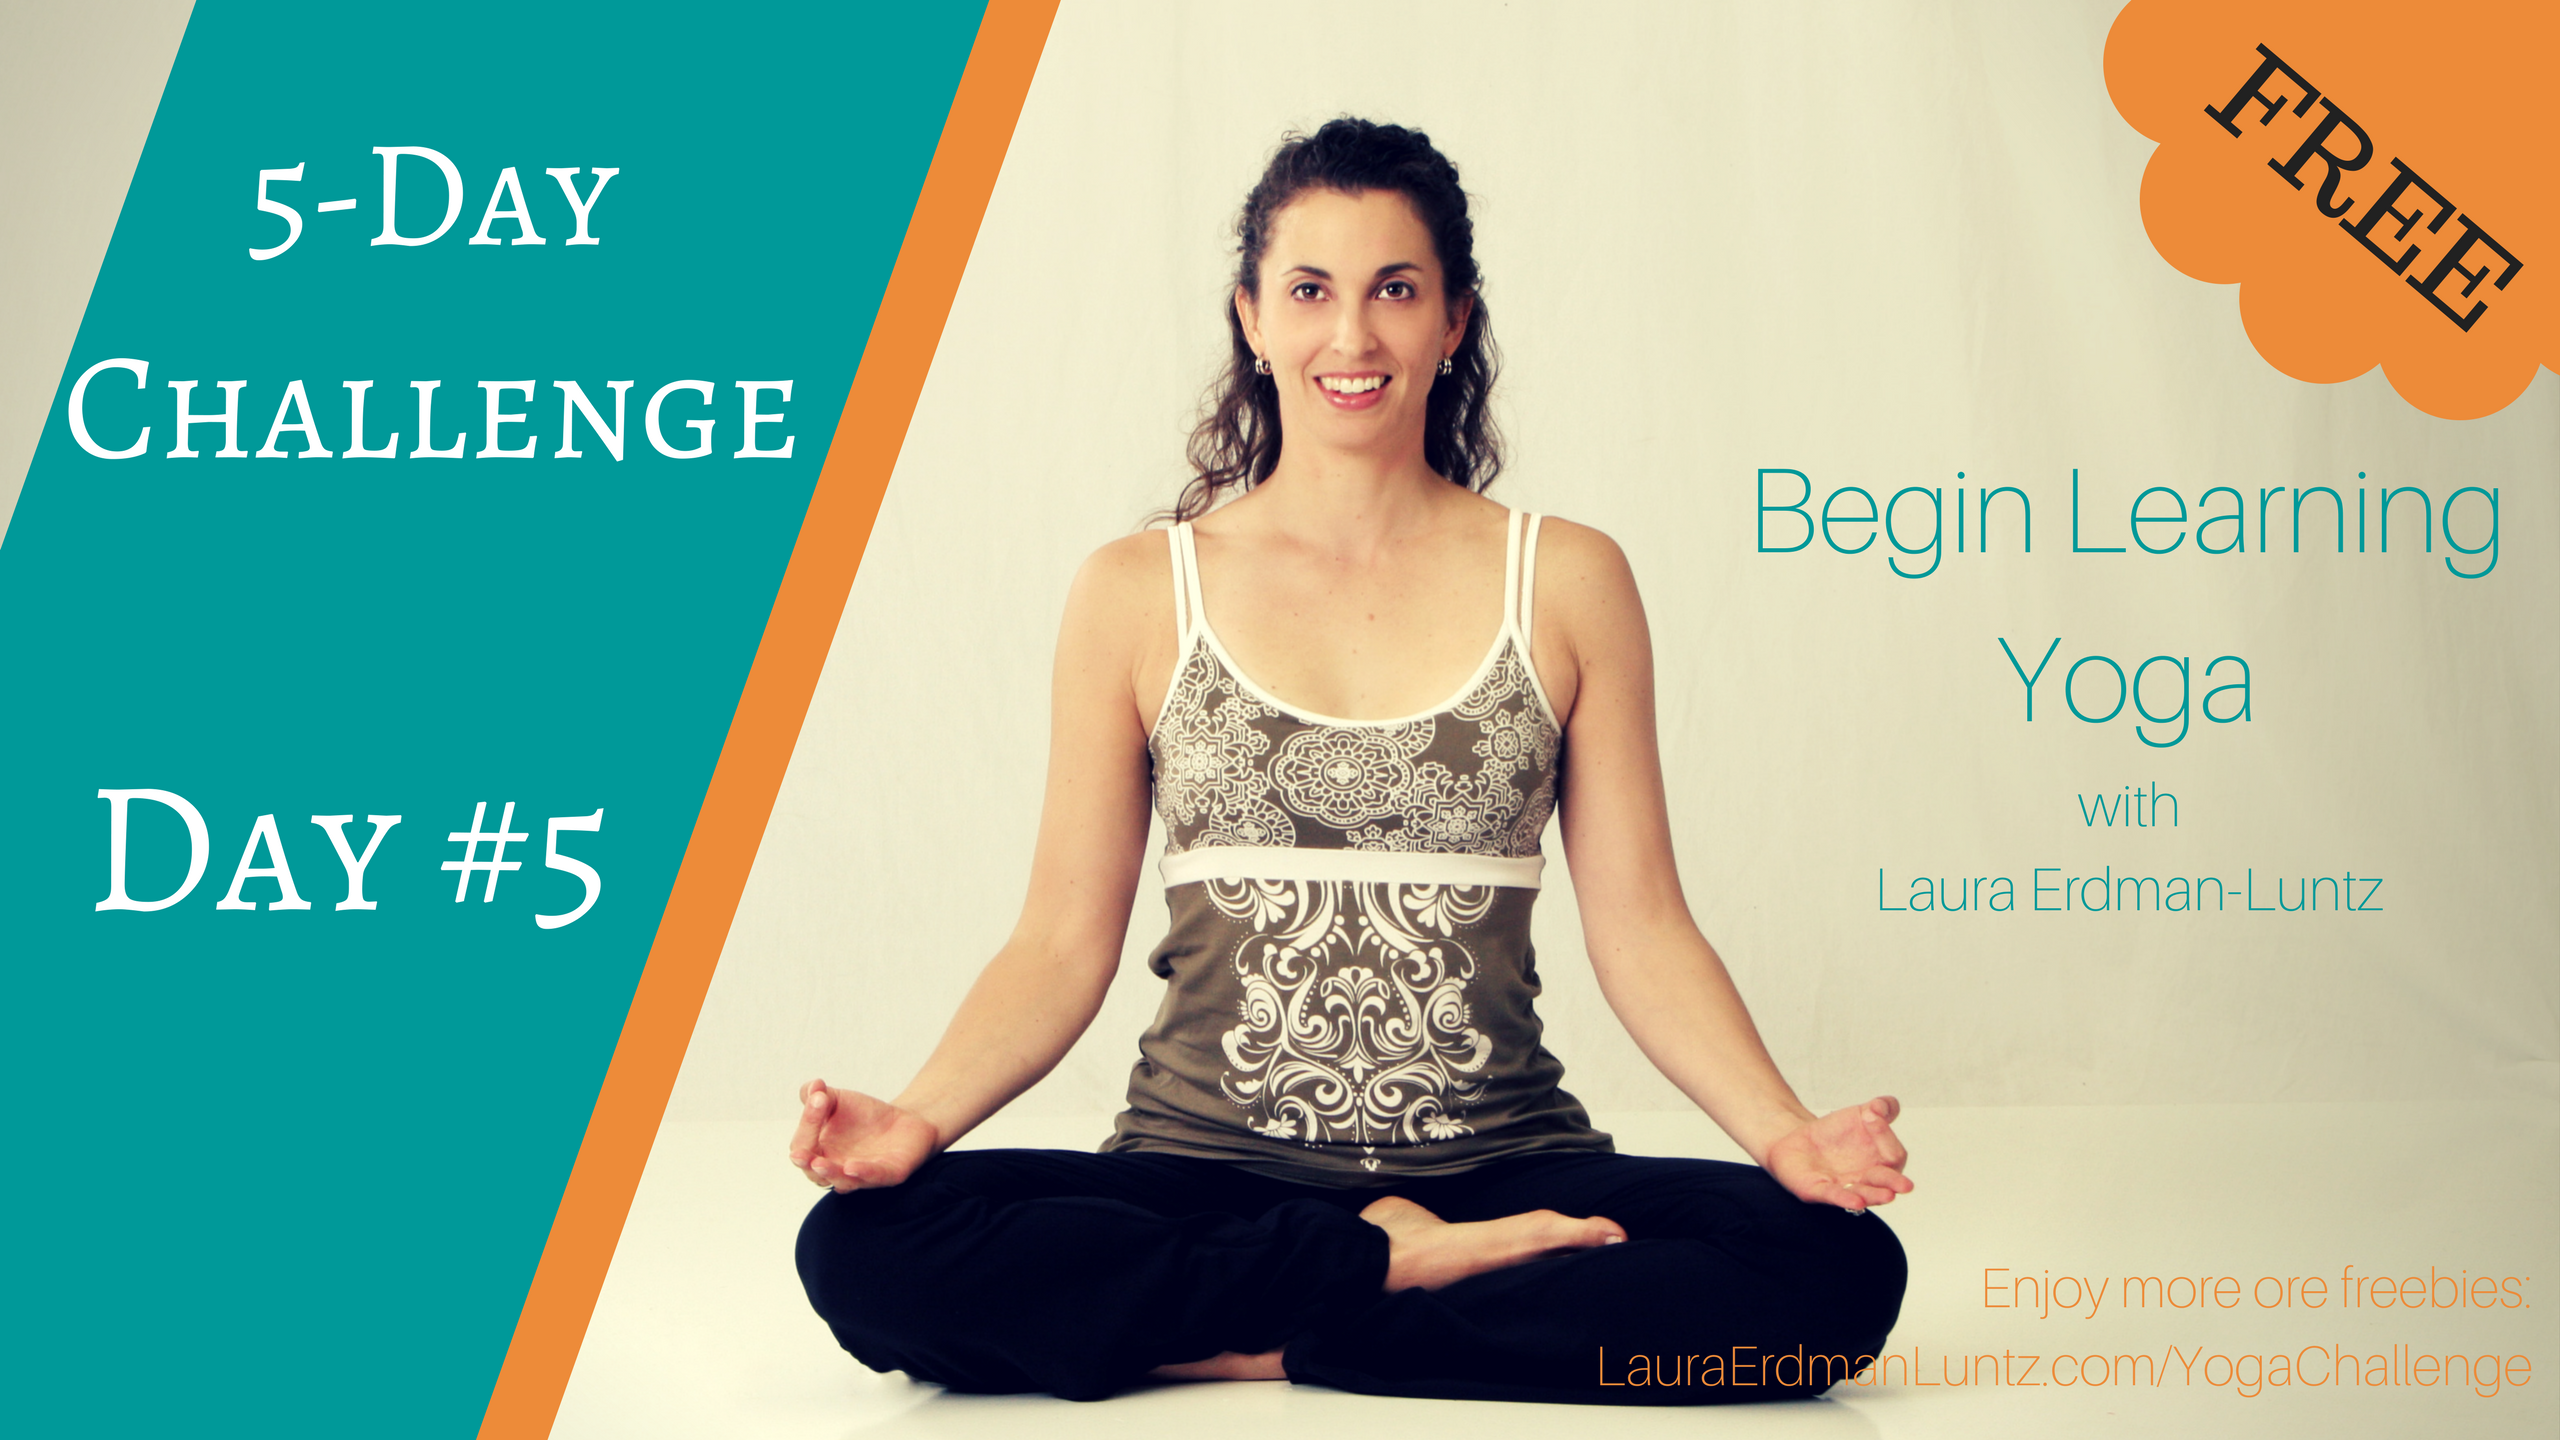 5-Day Challenge: Learn Yoga Day #5